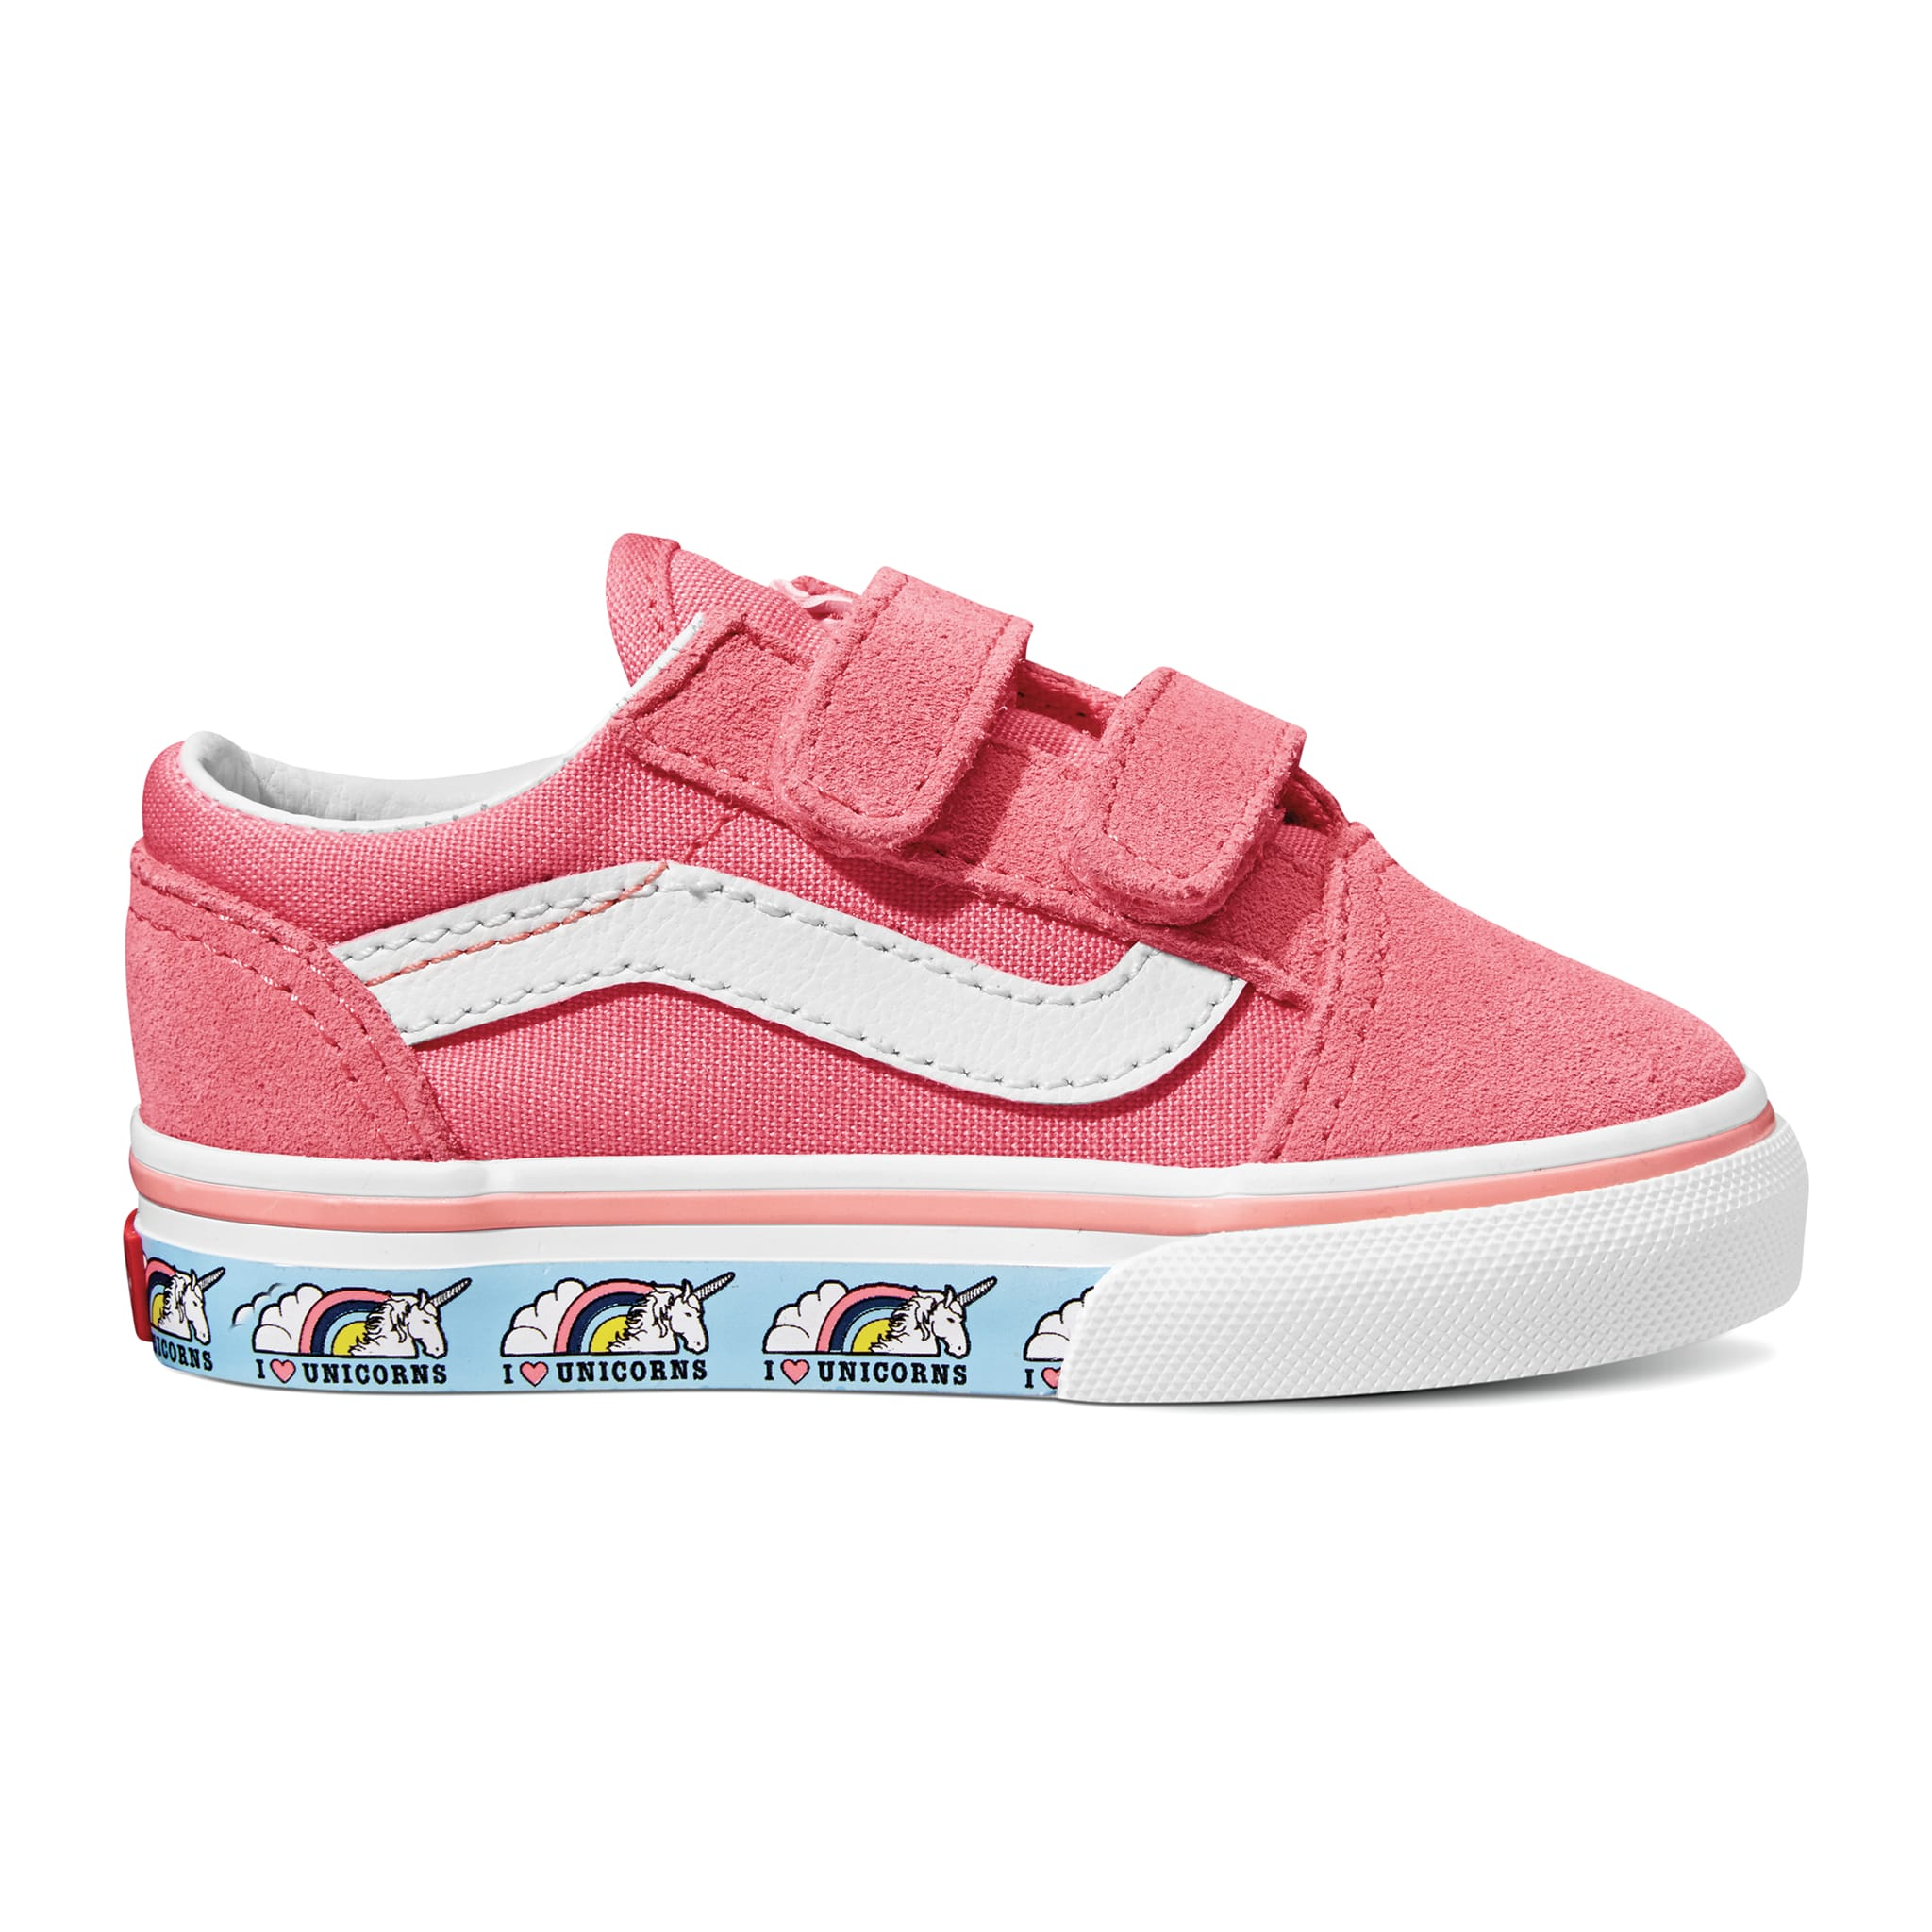 6516e82ee Vans Shoe Old Skool Sizes 4-10 - Unicorn - Clement